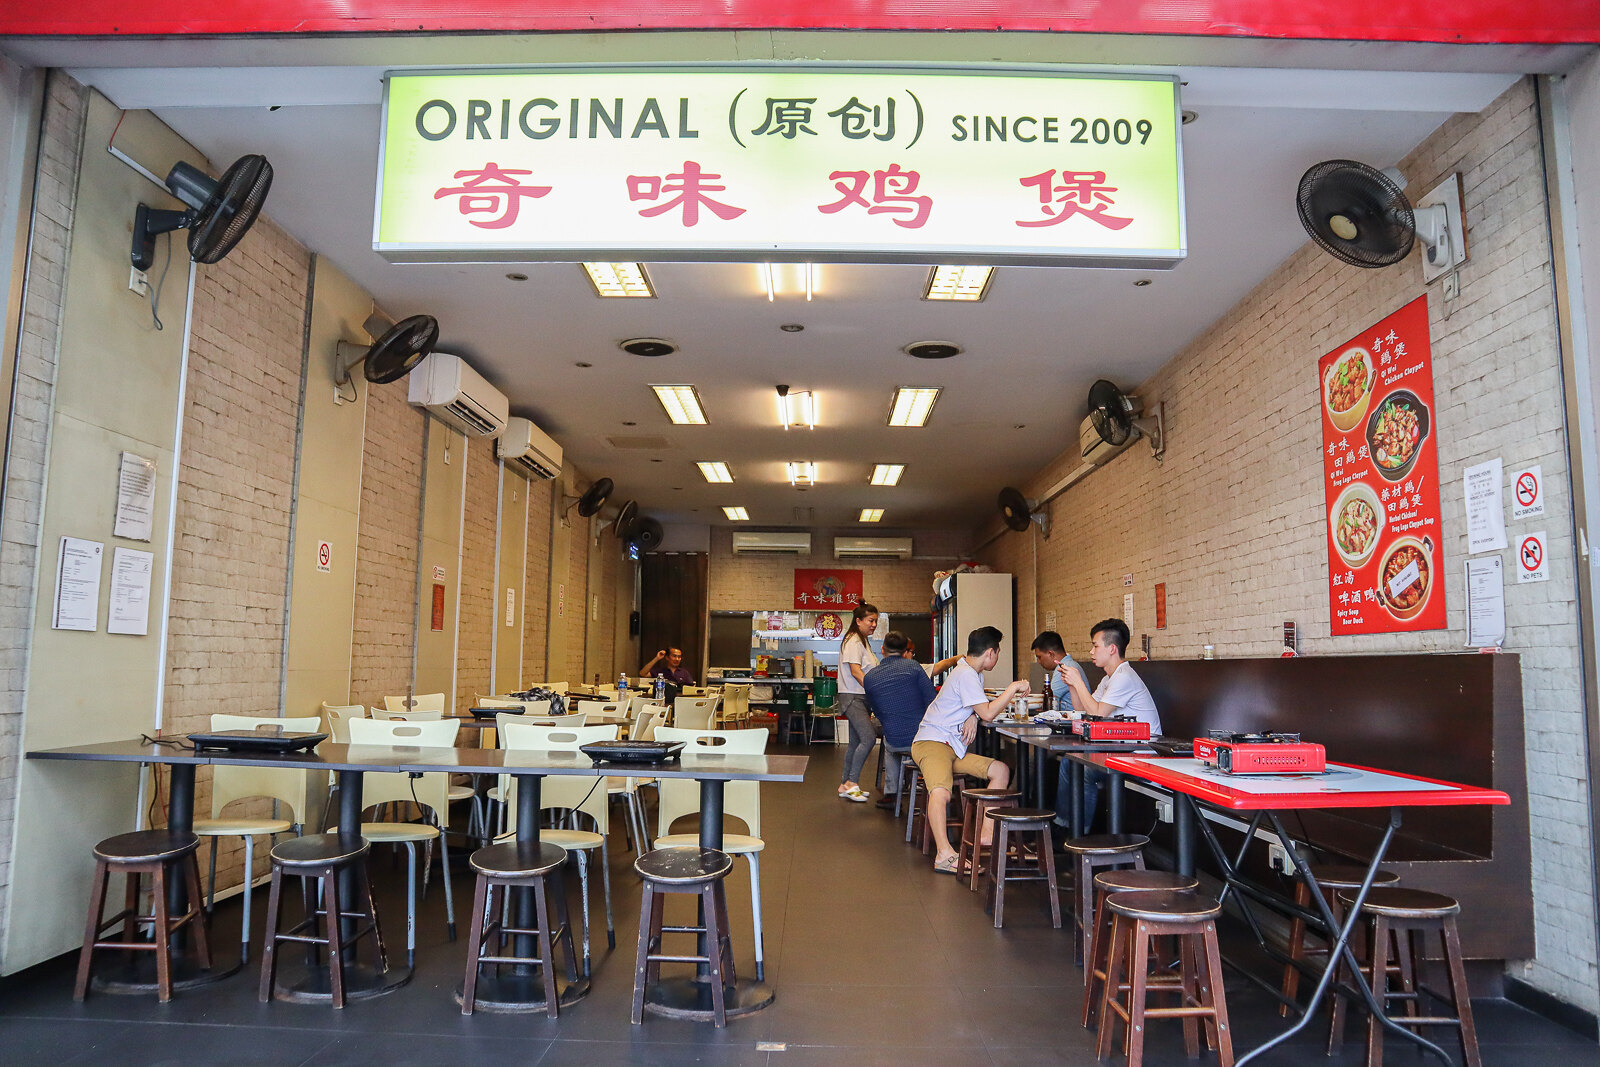 Qi Wei Ji Bao 奇味鸡煲 – The Original Chicken Hotpot in Singapore